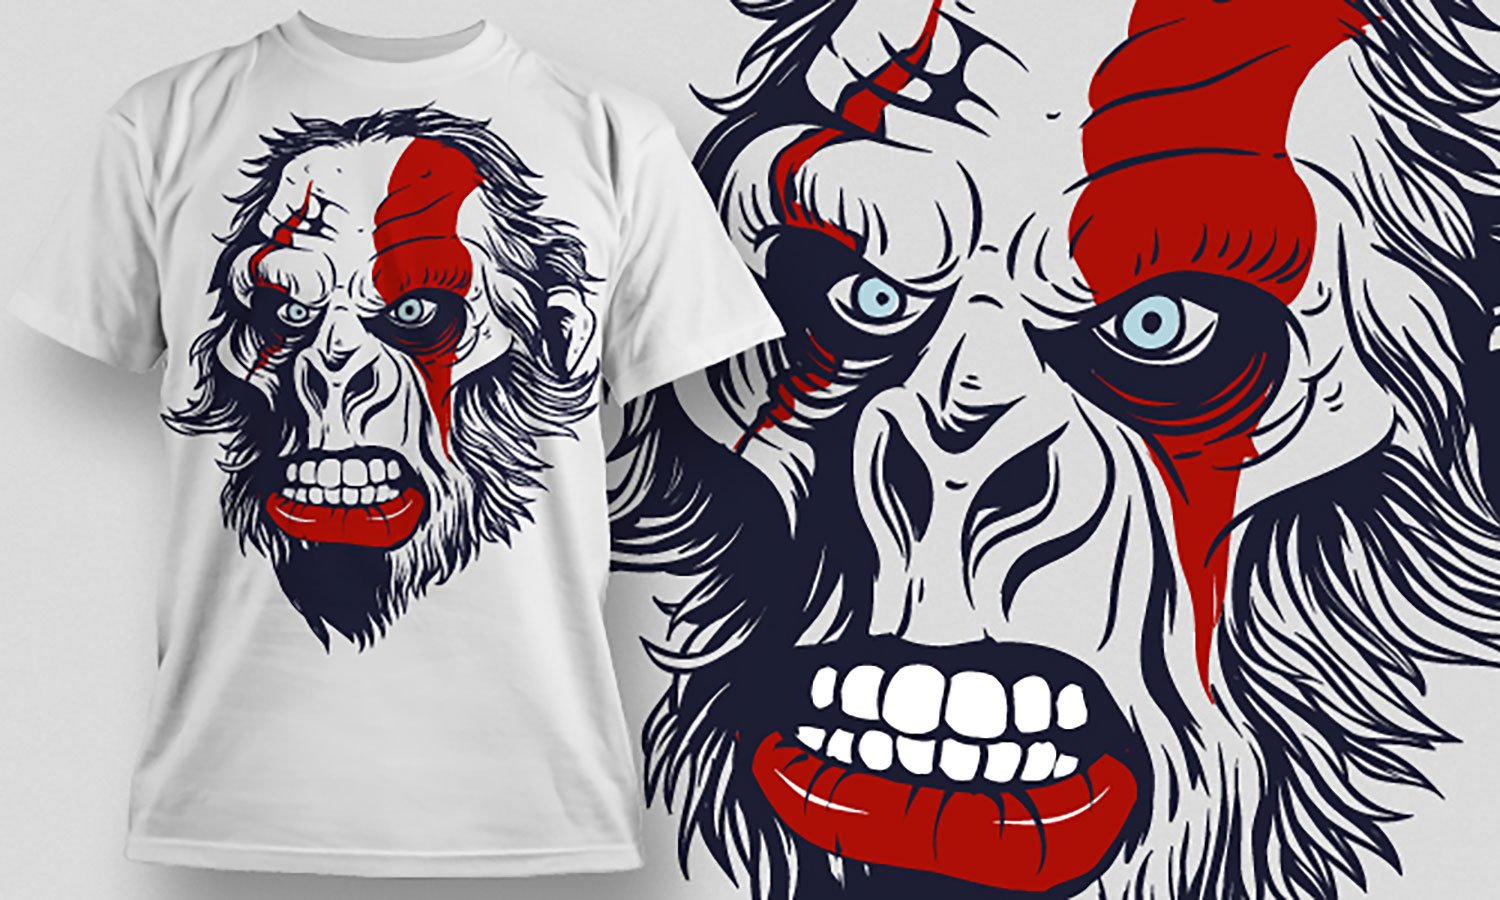 Gorilla - Printed T-Shirt for Men, Women and Kids - TS311